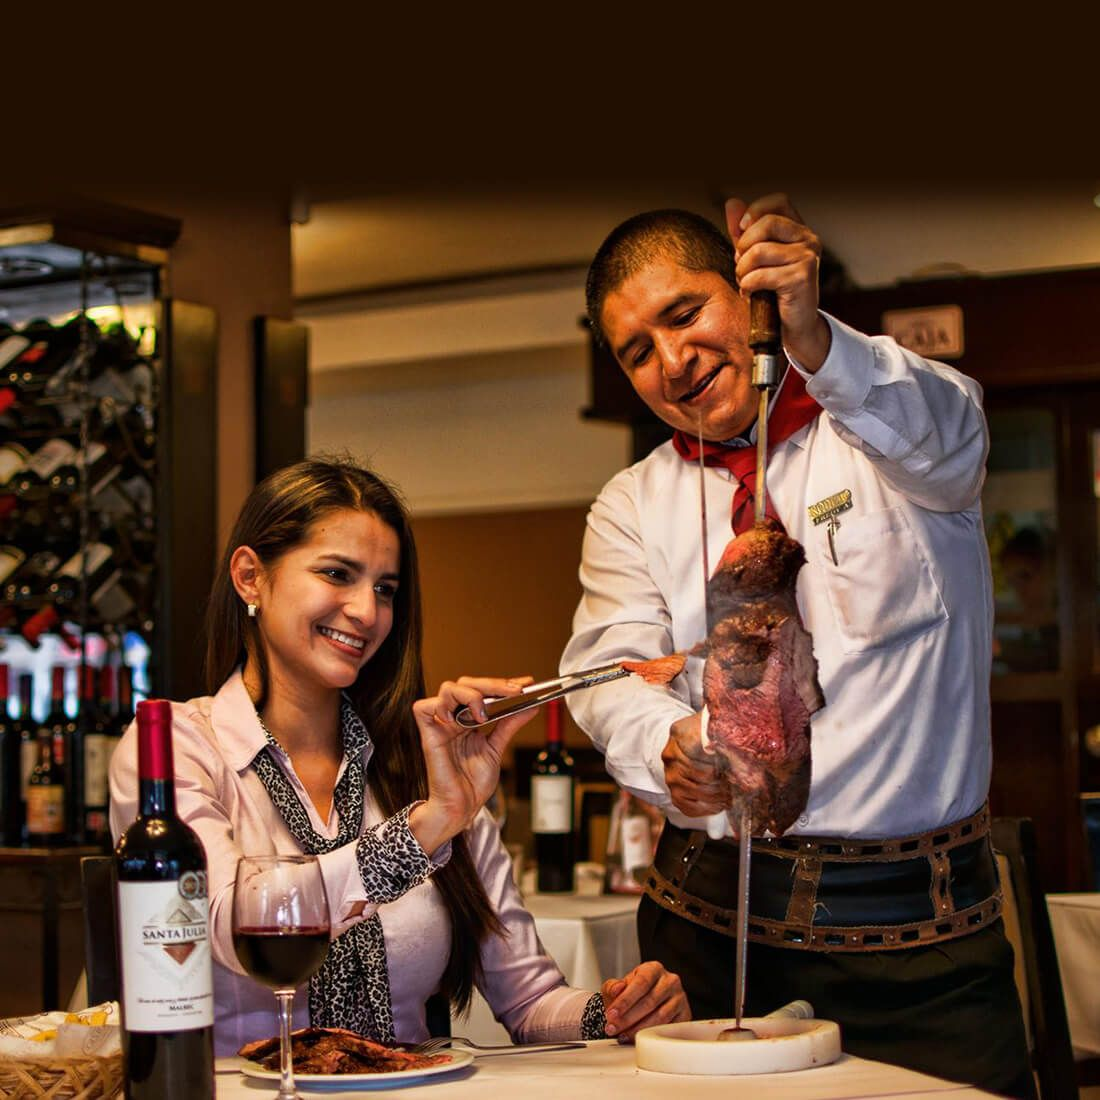 RODIZIO - SAN MIGUEL Restaurant - and Peruvian Food MEAT AND GRILL - SAN MIGUEL - MESA 24/7 Guide | LIMA - Peru